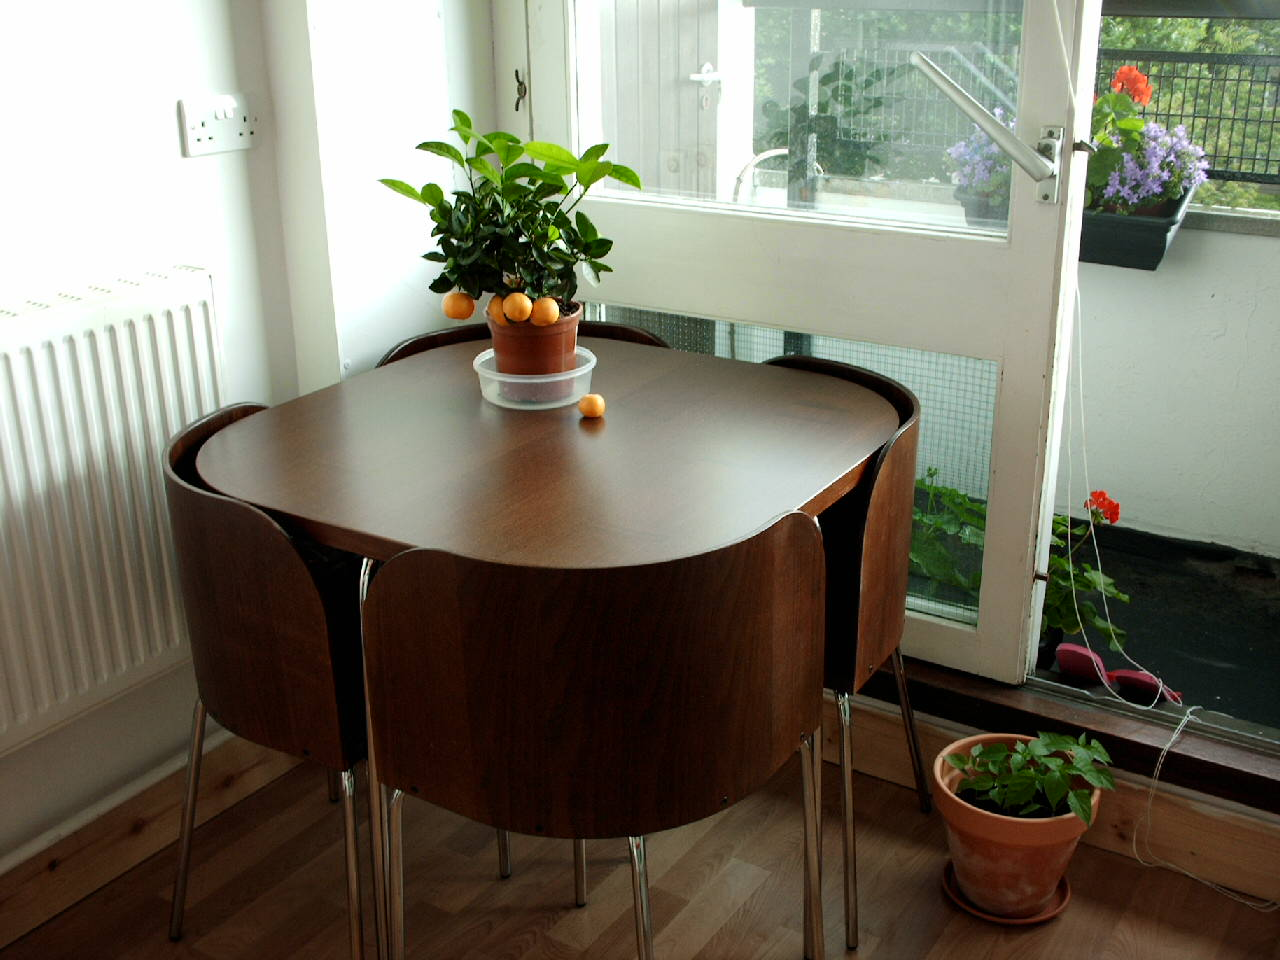 Kitchen Day 16 Ikea Fusion Table And Chairs A Photo On